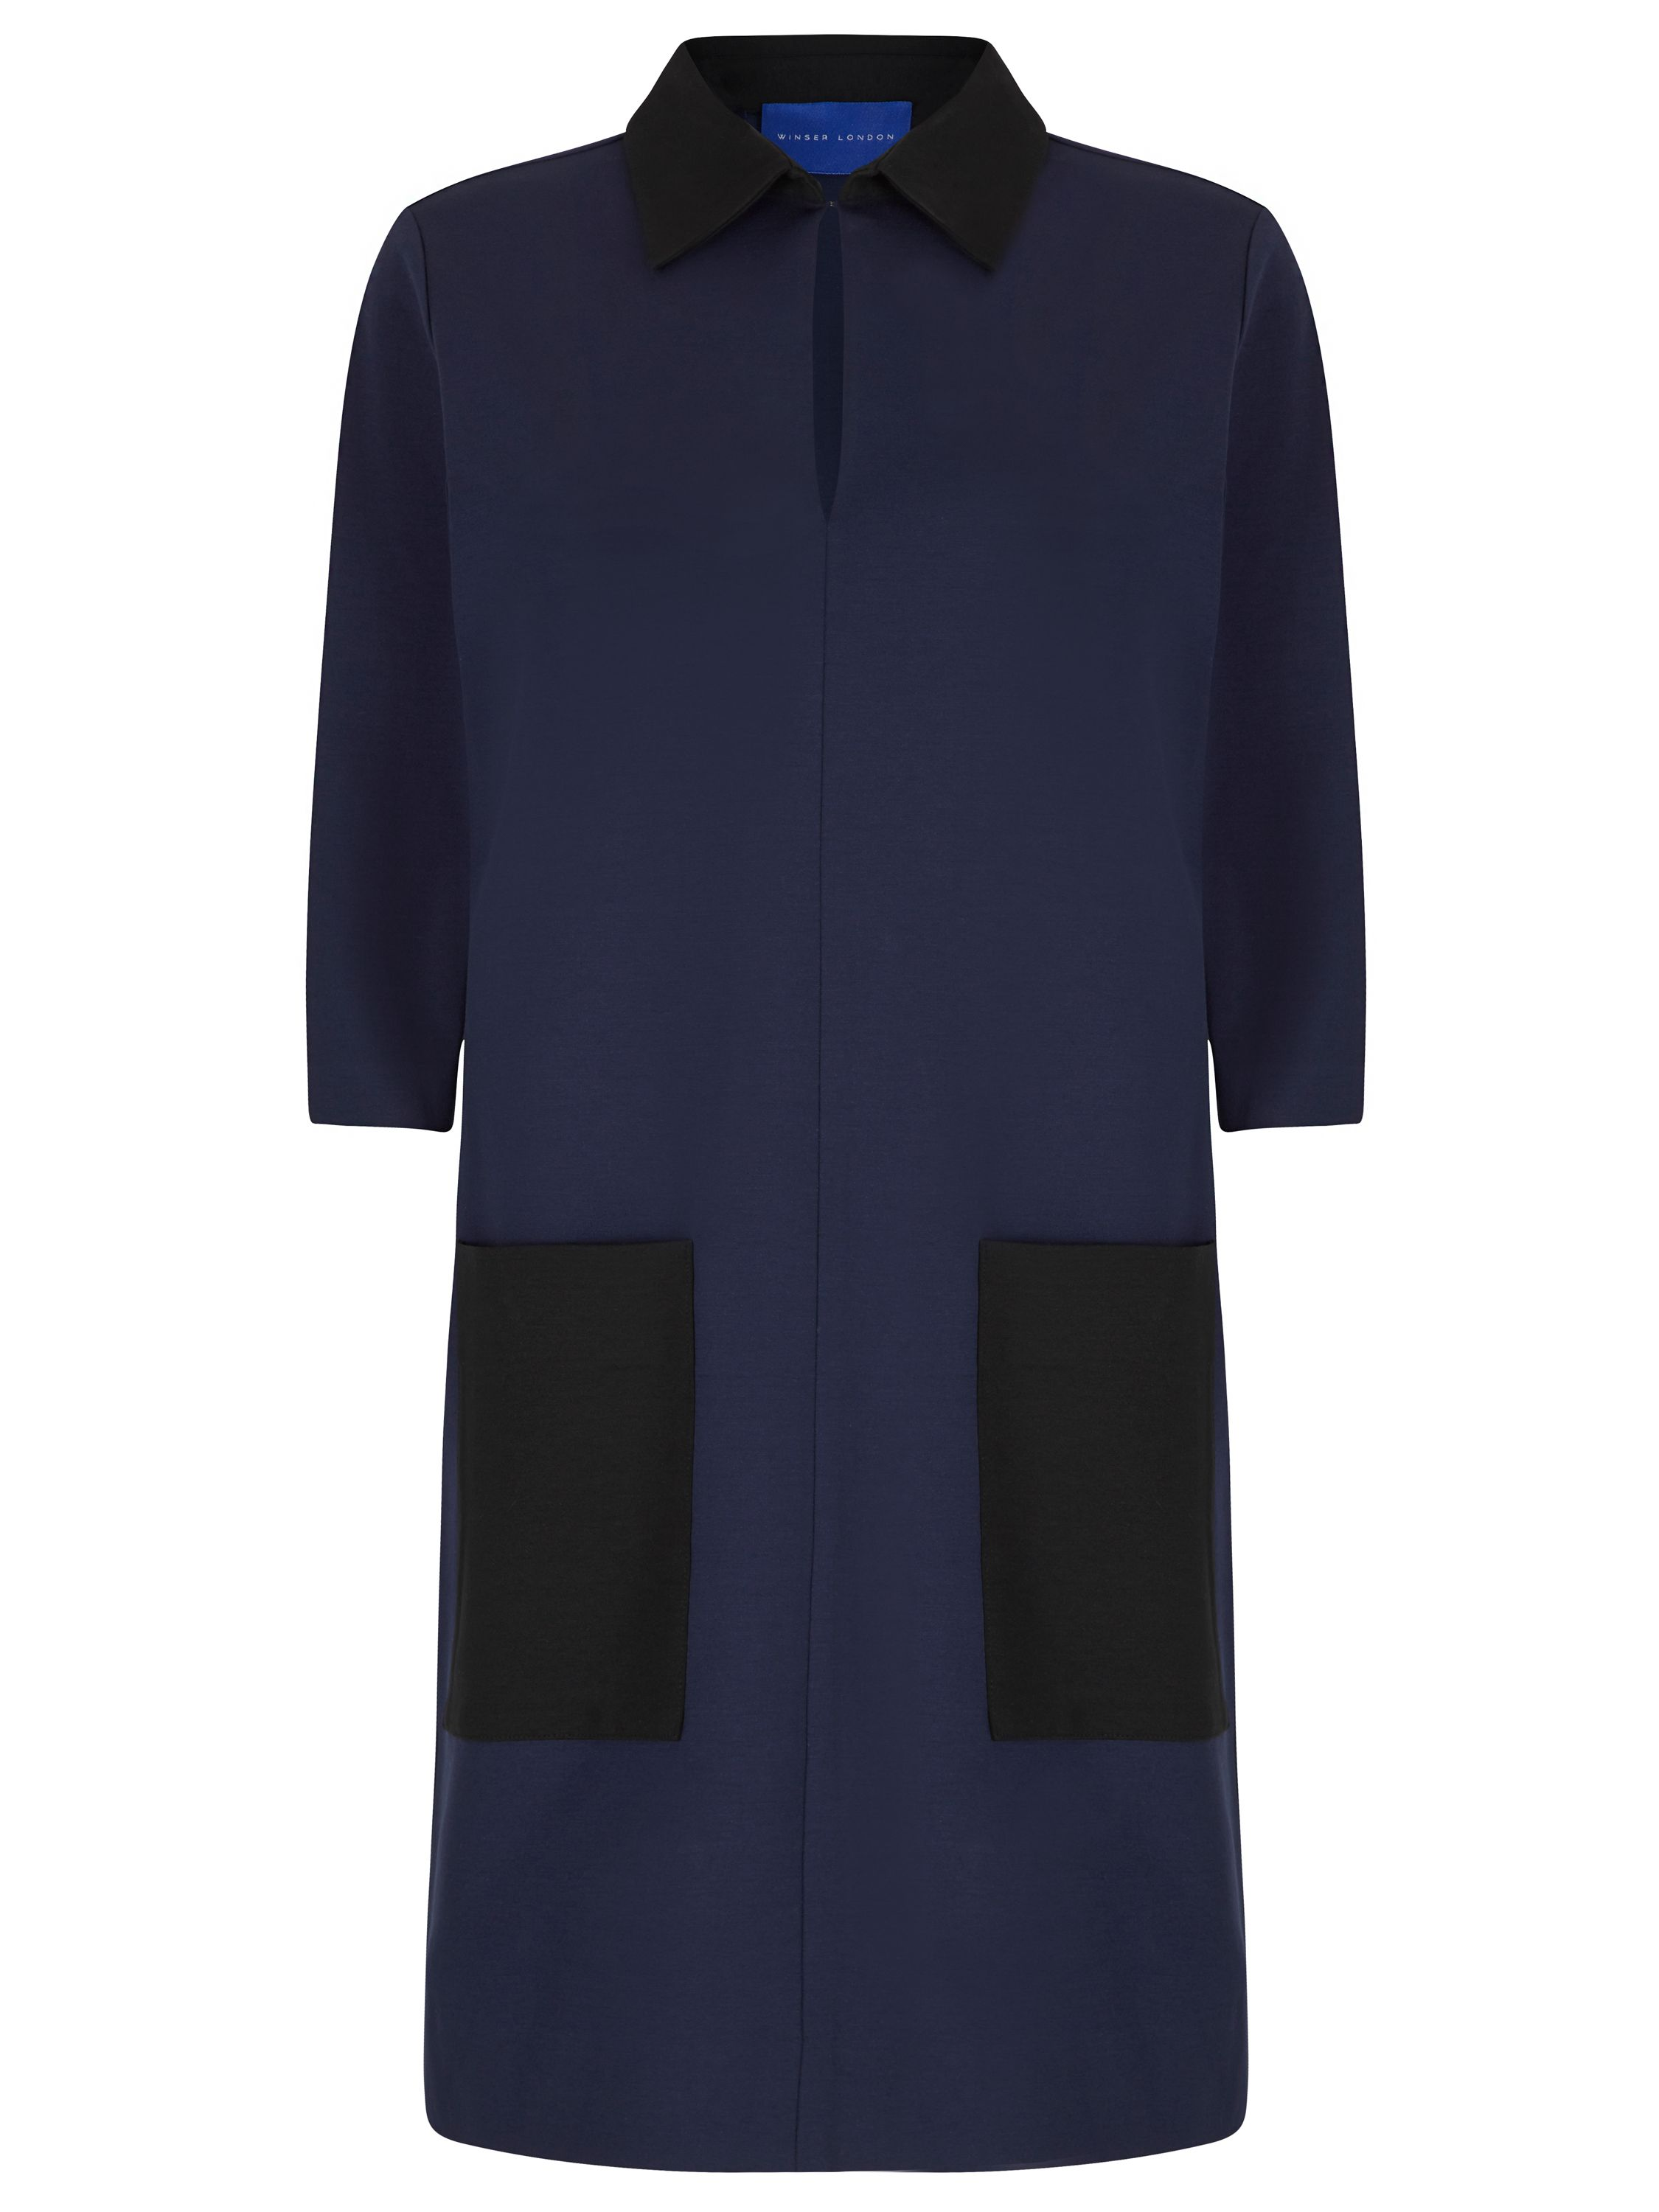 Winser London Miracle Colour Block Shift Dress, Midnight